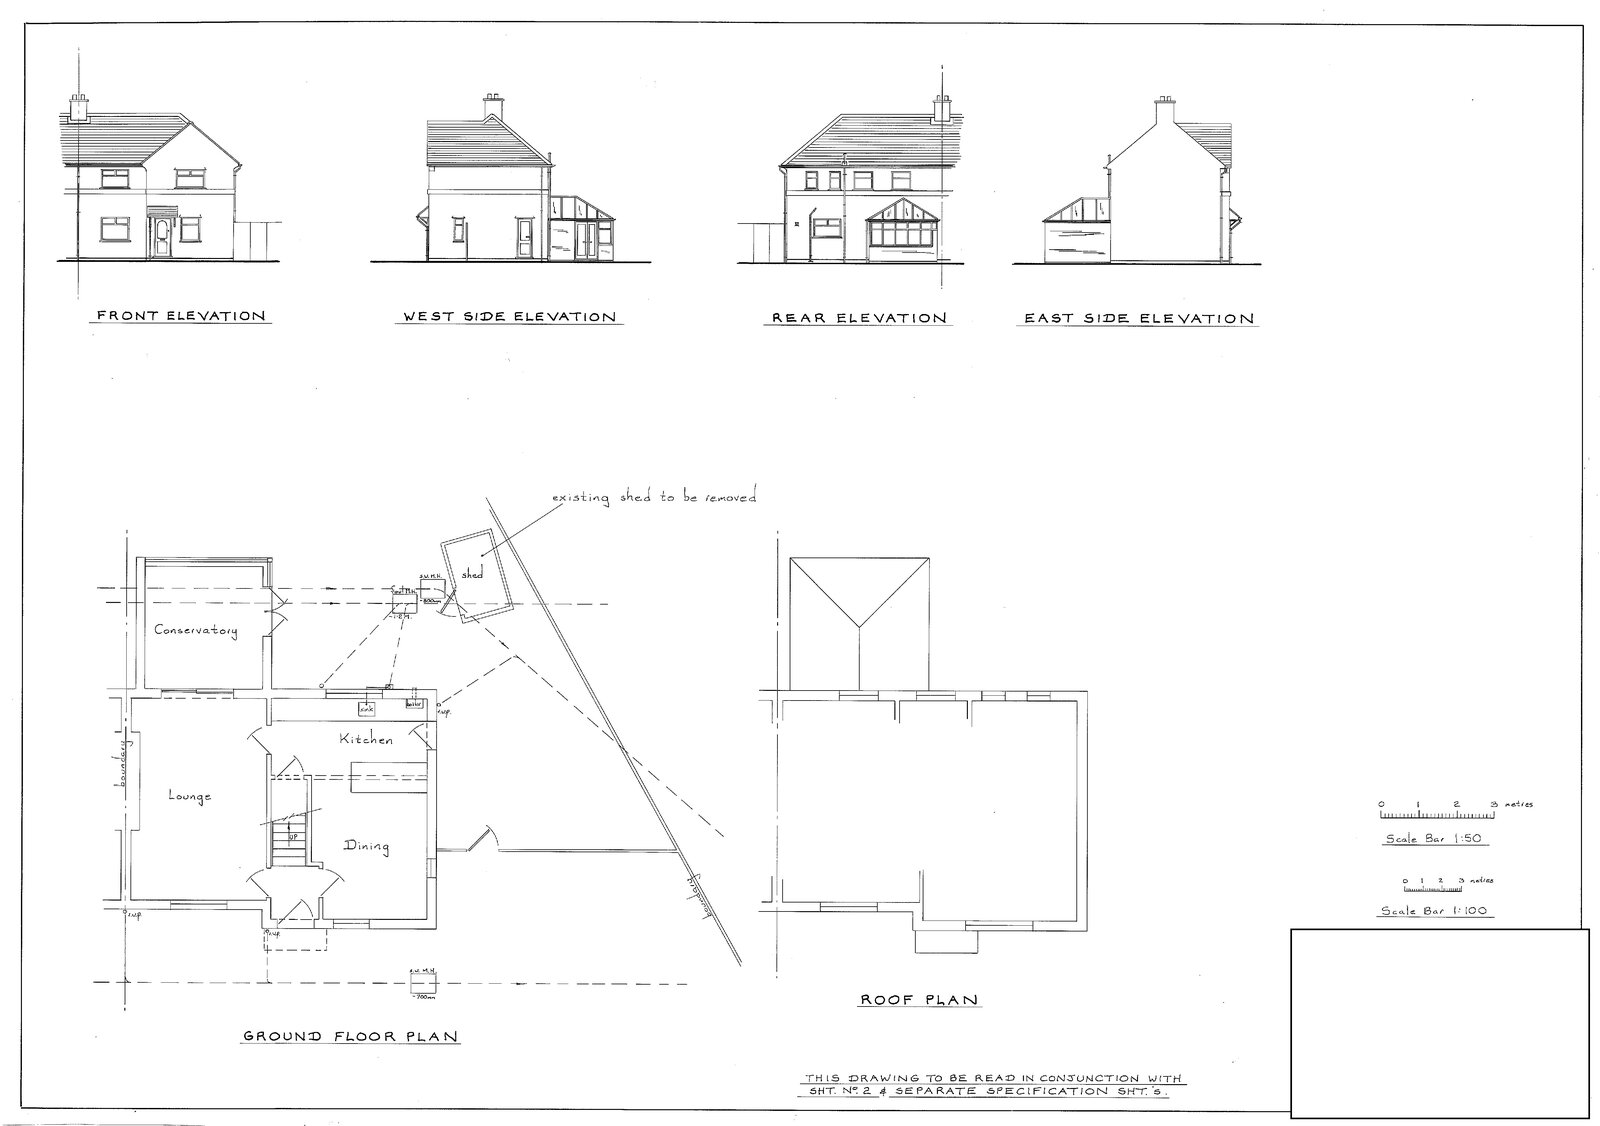 EXISTING_PLANS_AND_ELEVATIONS-742397.jpg